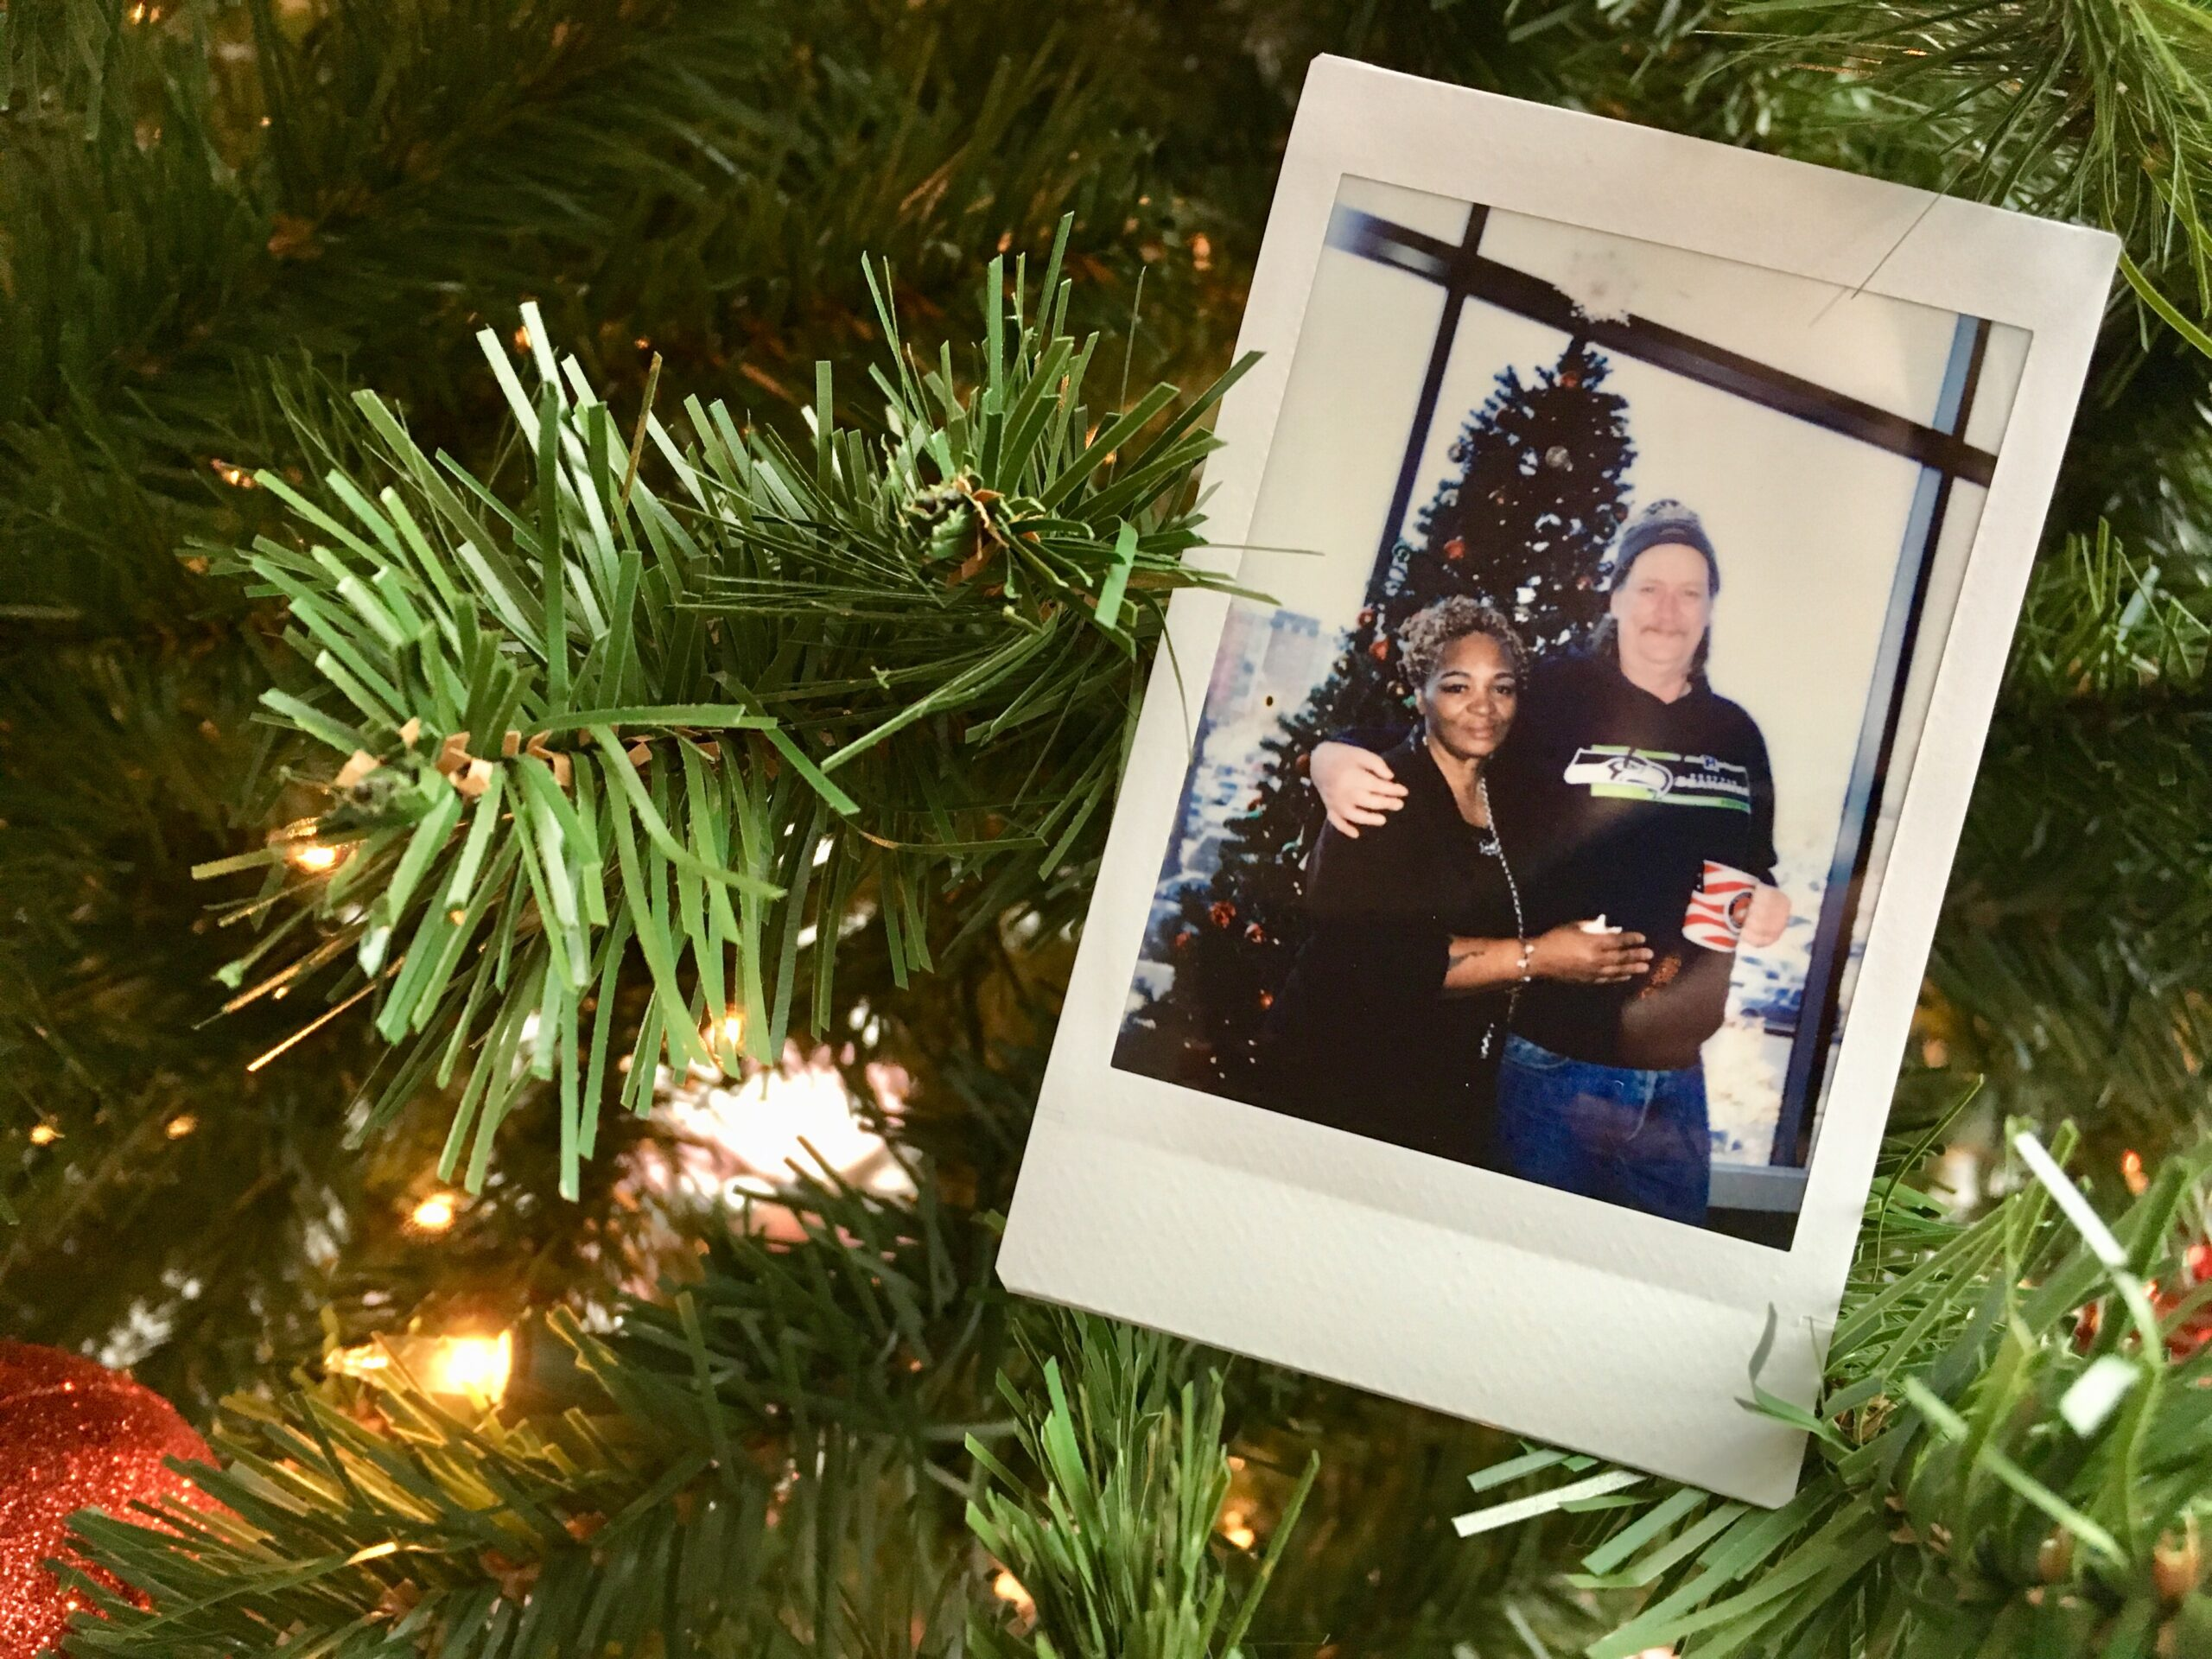 Polaroid photo hanging on Christmas tree featuring Paul and friend